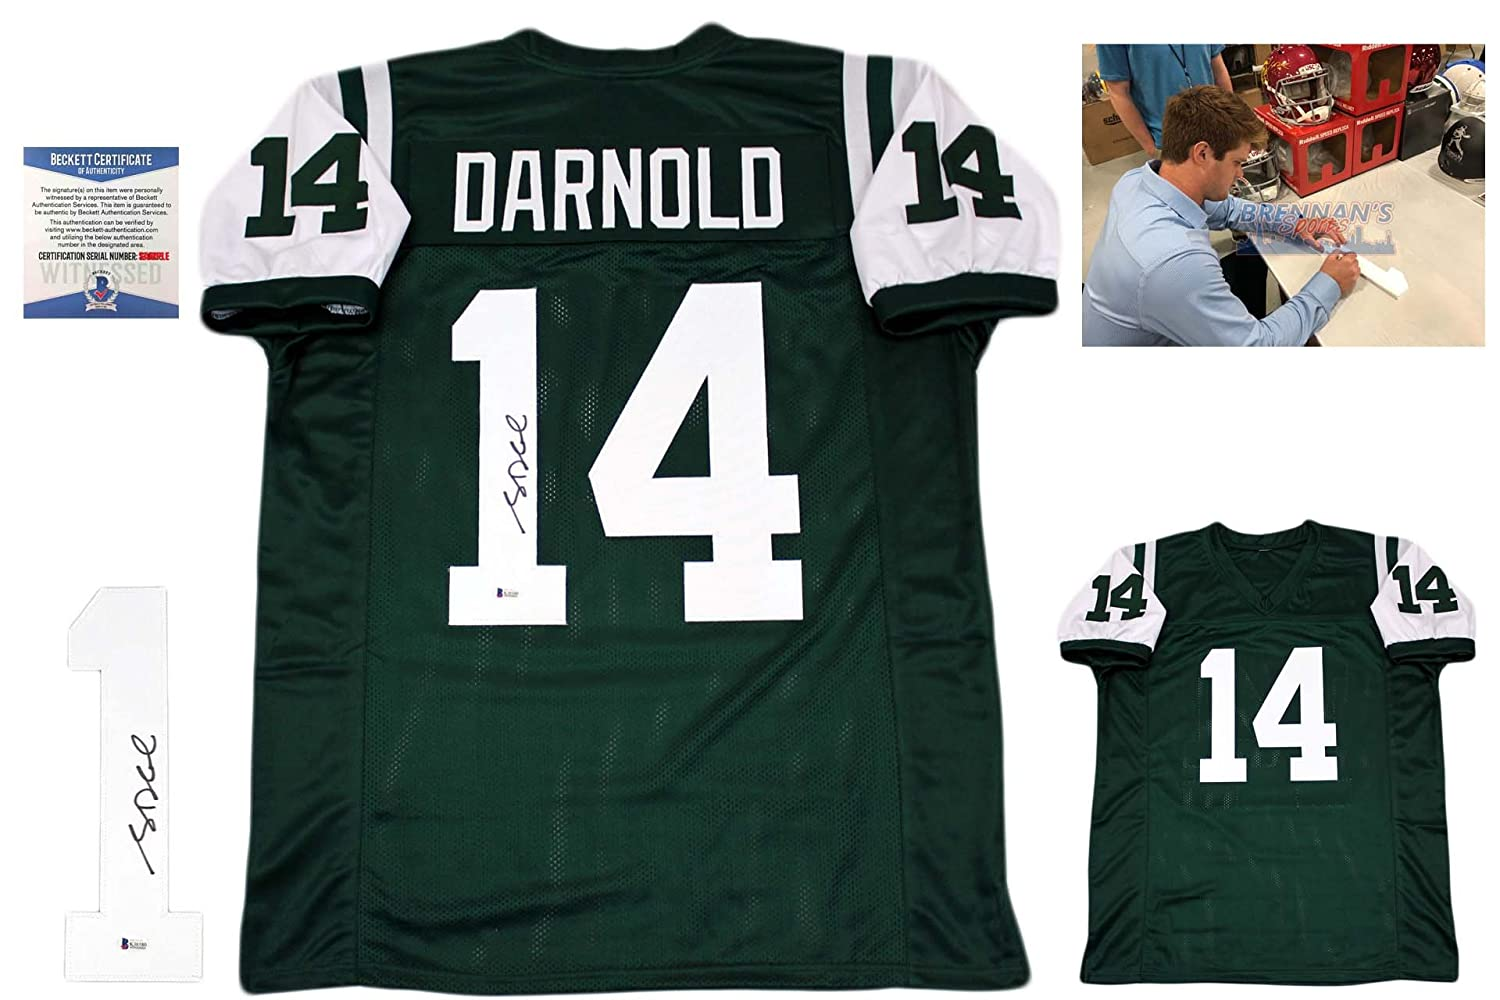 7a023f36e34 Sam Darnold Autographed SIGNED Jersey - Beckett Authentic at Amazon's  Sports Collectibles Store